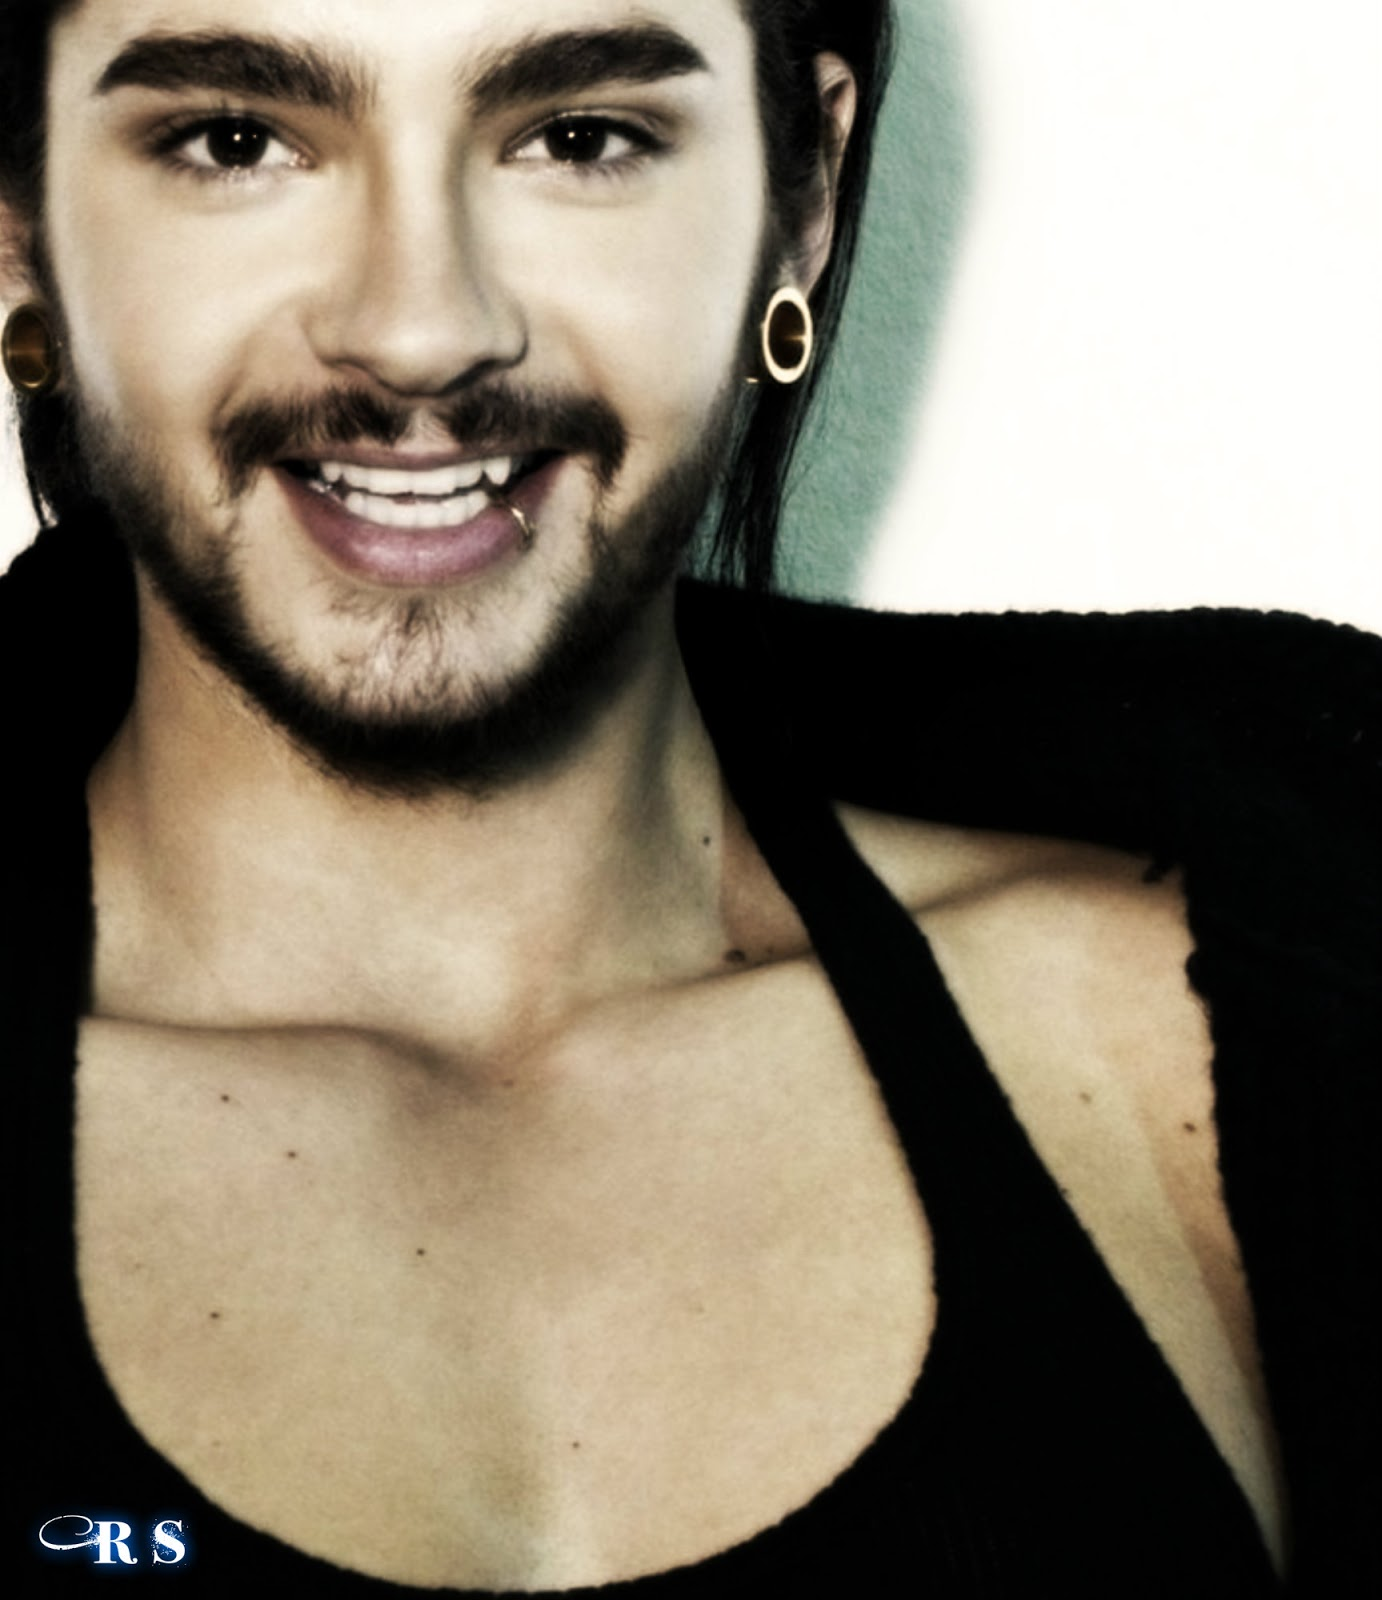 Picture of tom kaulitz -  6 New Hq Pics Edited Bill Kaulitz Photoshoot Dsds Dreamteam 2013